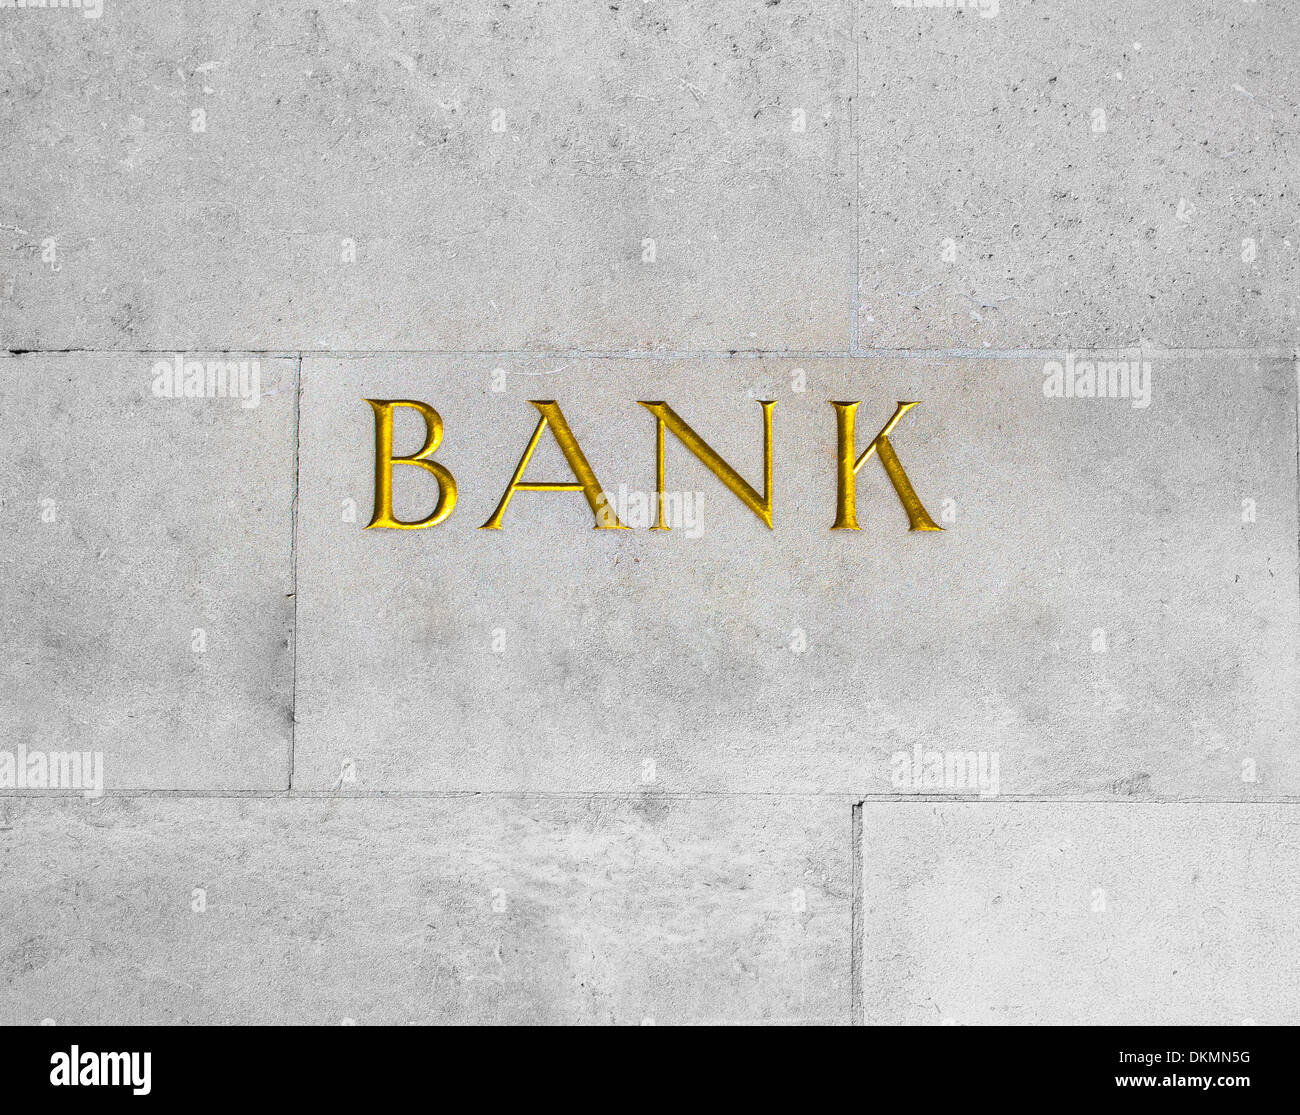 A gold sign for a bank - Stock Image